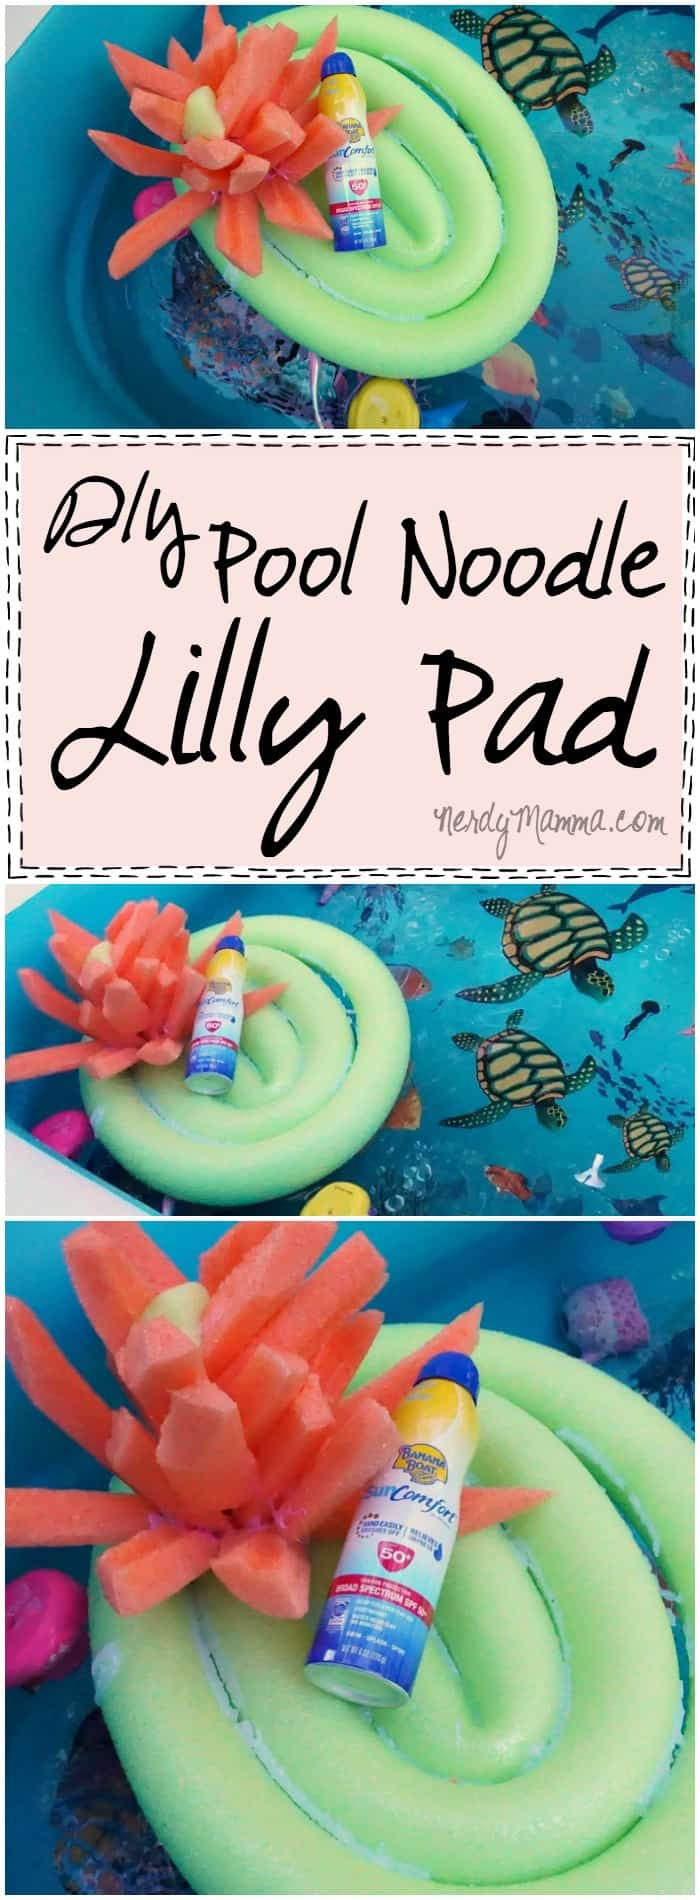 This is such a cute idea for a pool floatie table made from one of those pool noodles! It's so cute--a Water Lilly Pad! How adorable!